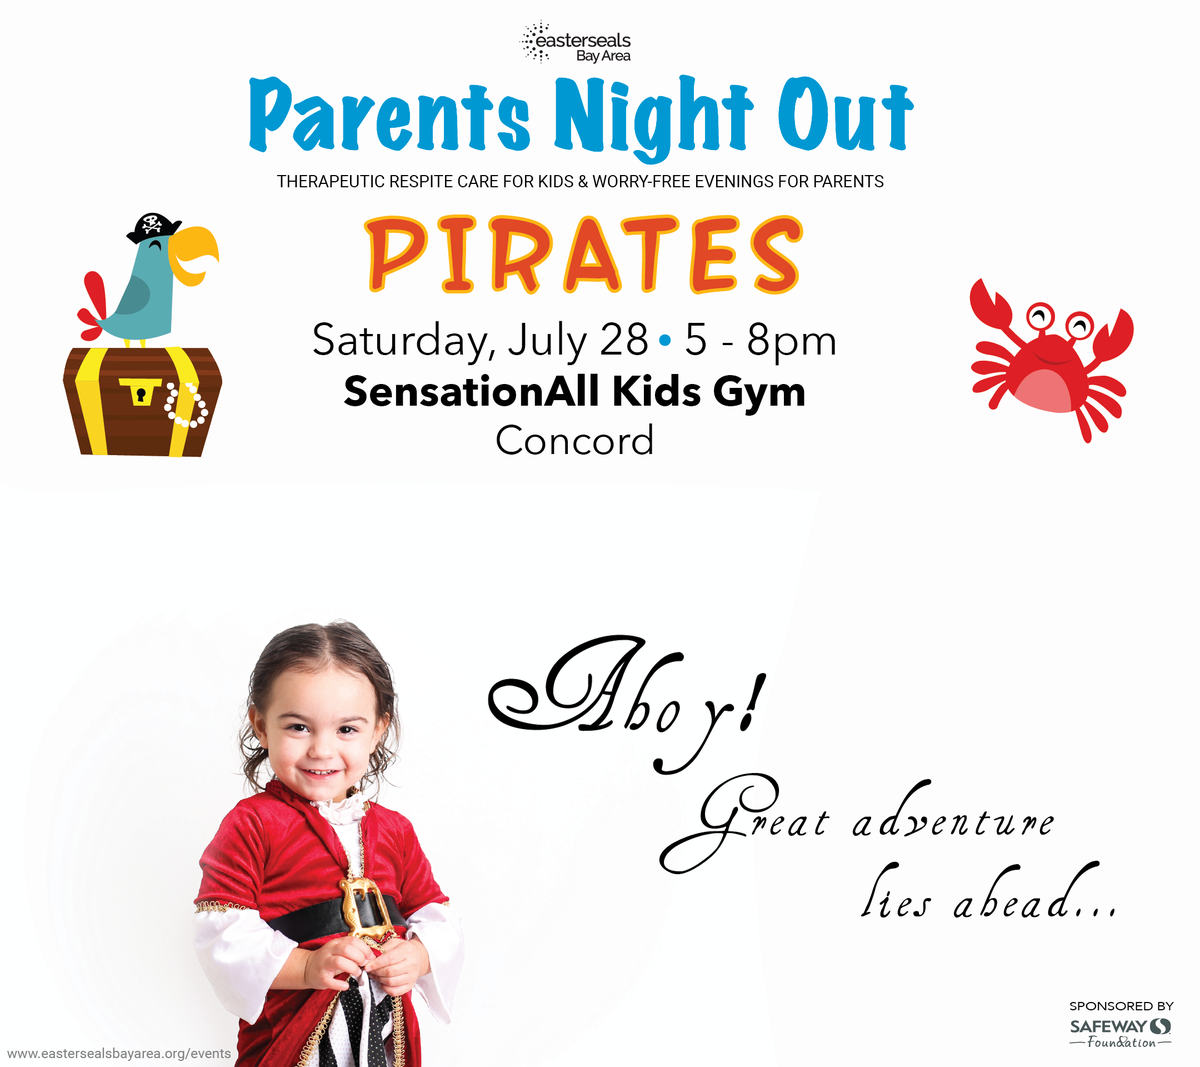 Eastersealsbayarea On Twitter Check Out Parentsnightout In